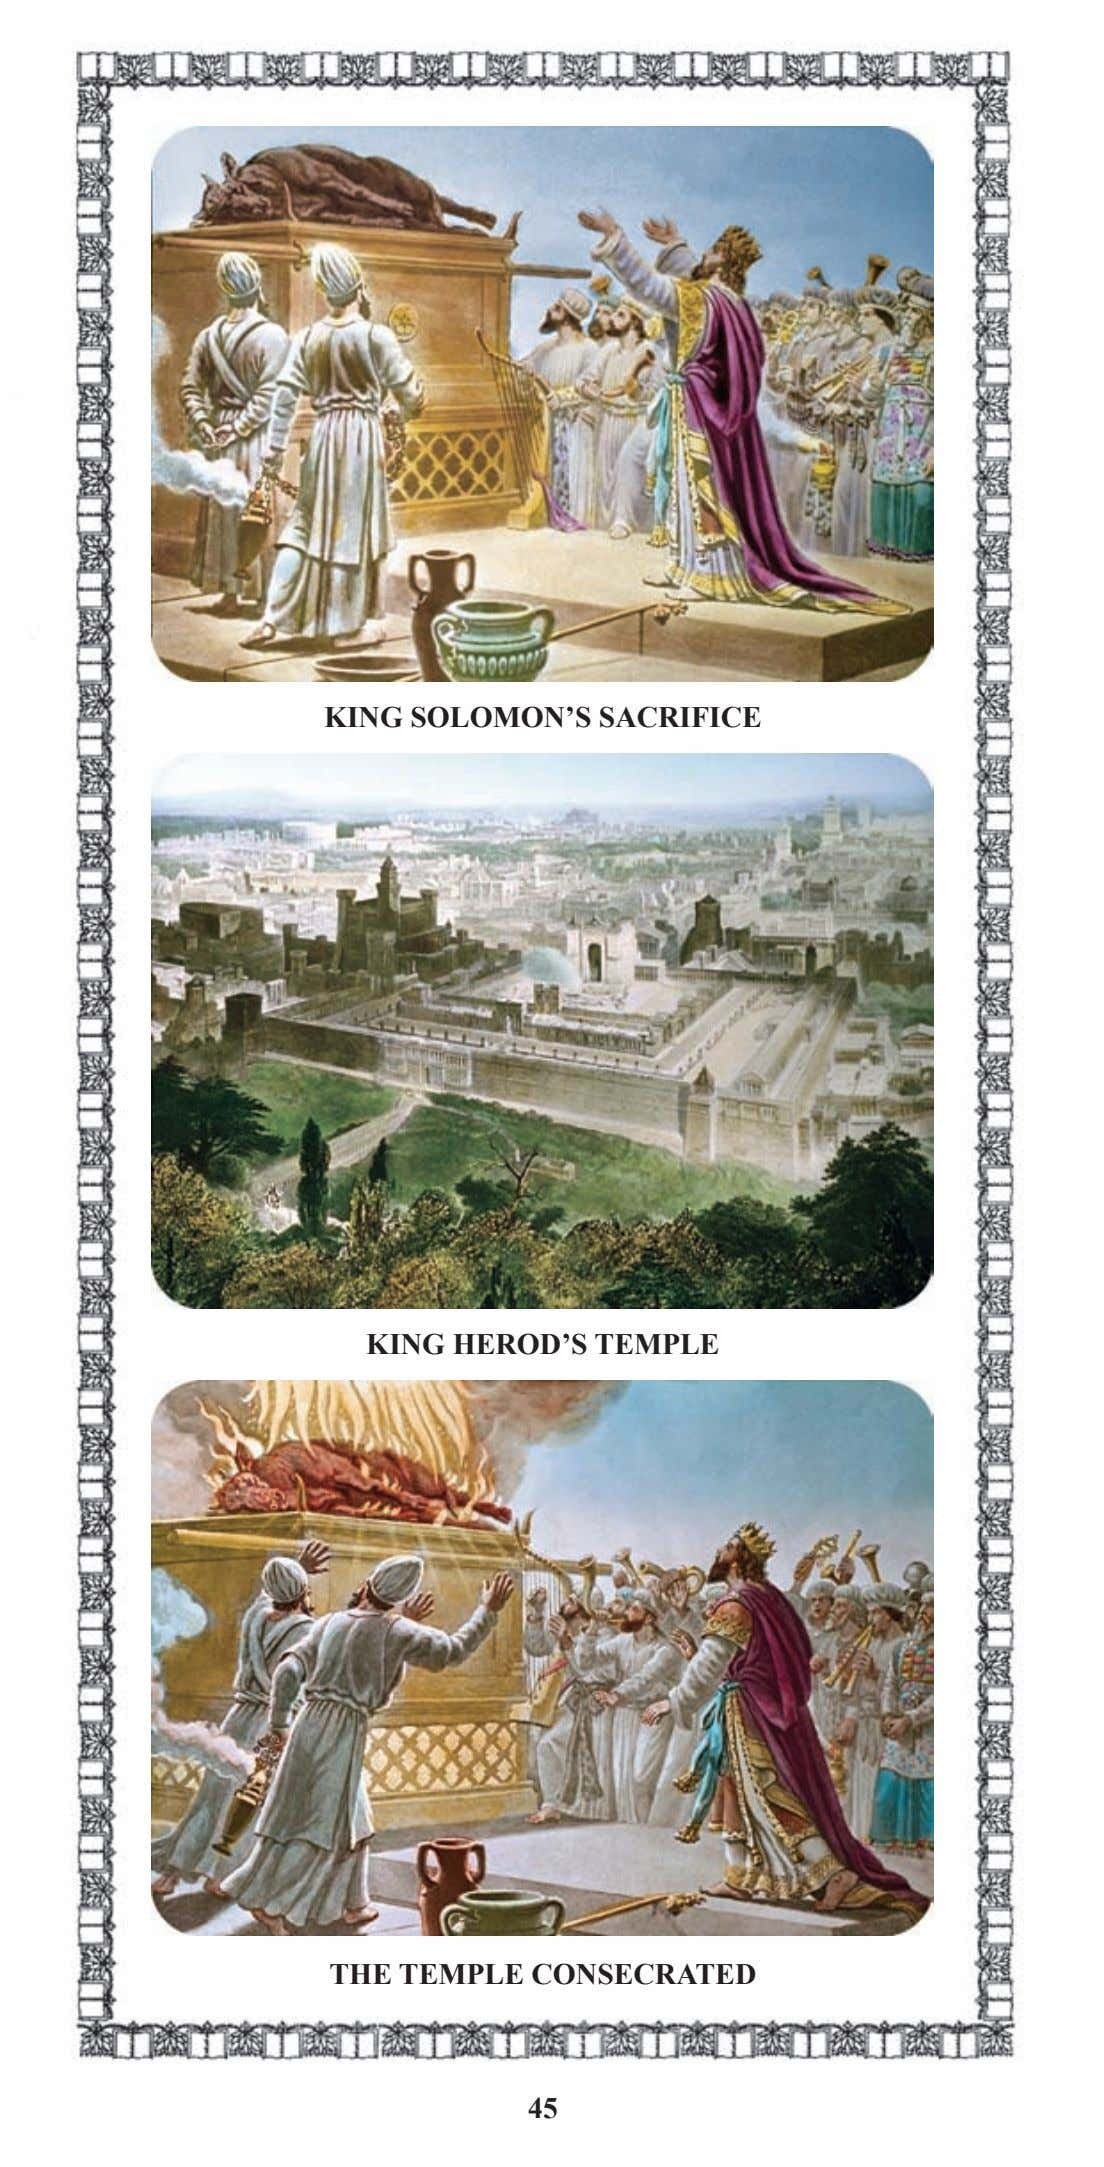 KING SOLOMON'S SACRIFICE KING HEROD'S TEMPLE THE TEMPLE CONSECRATED 45